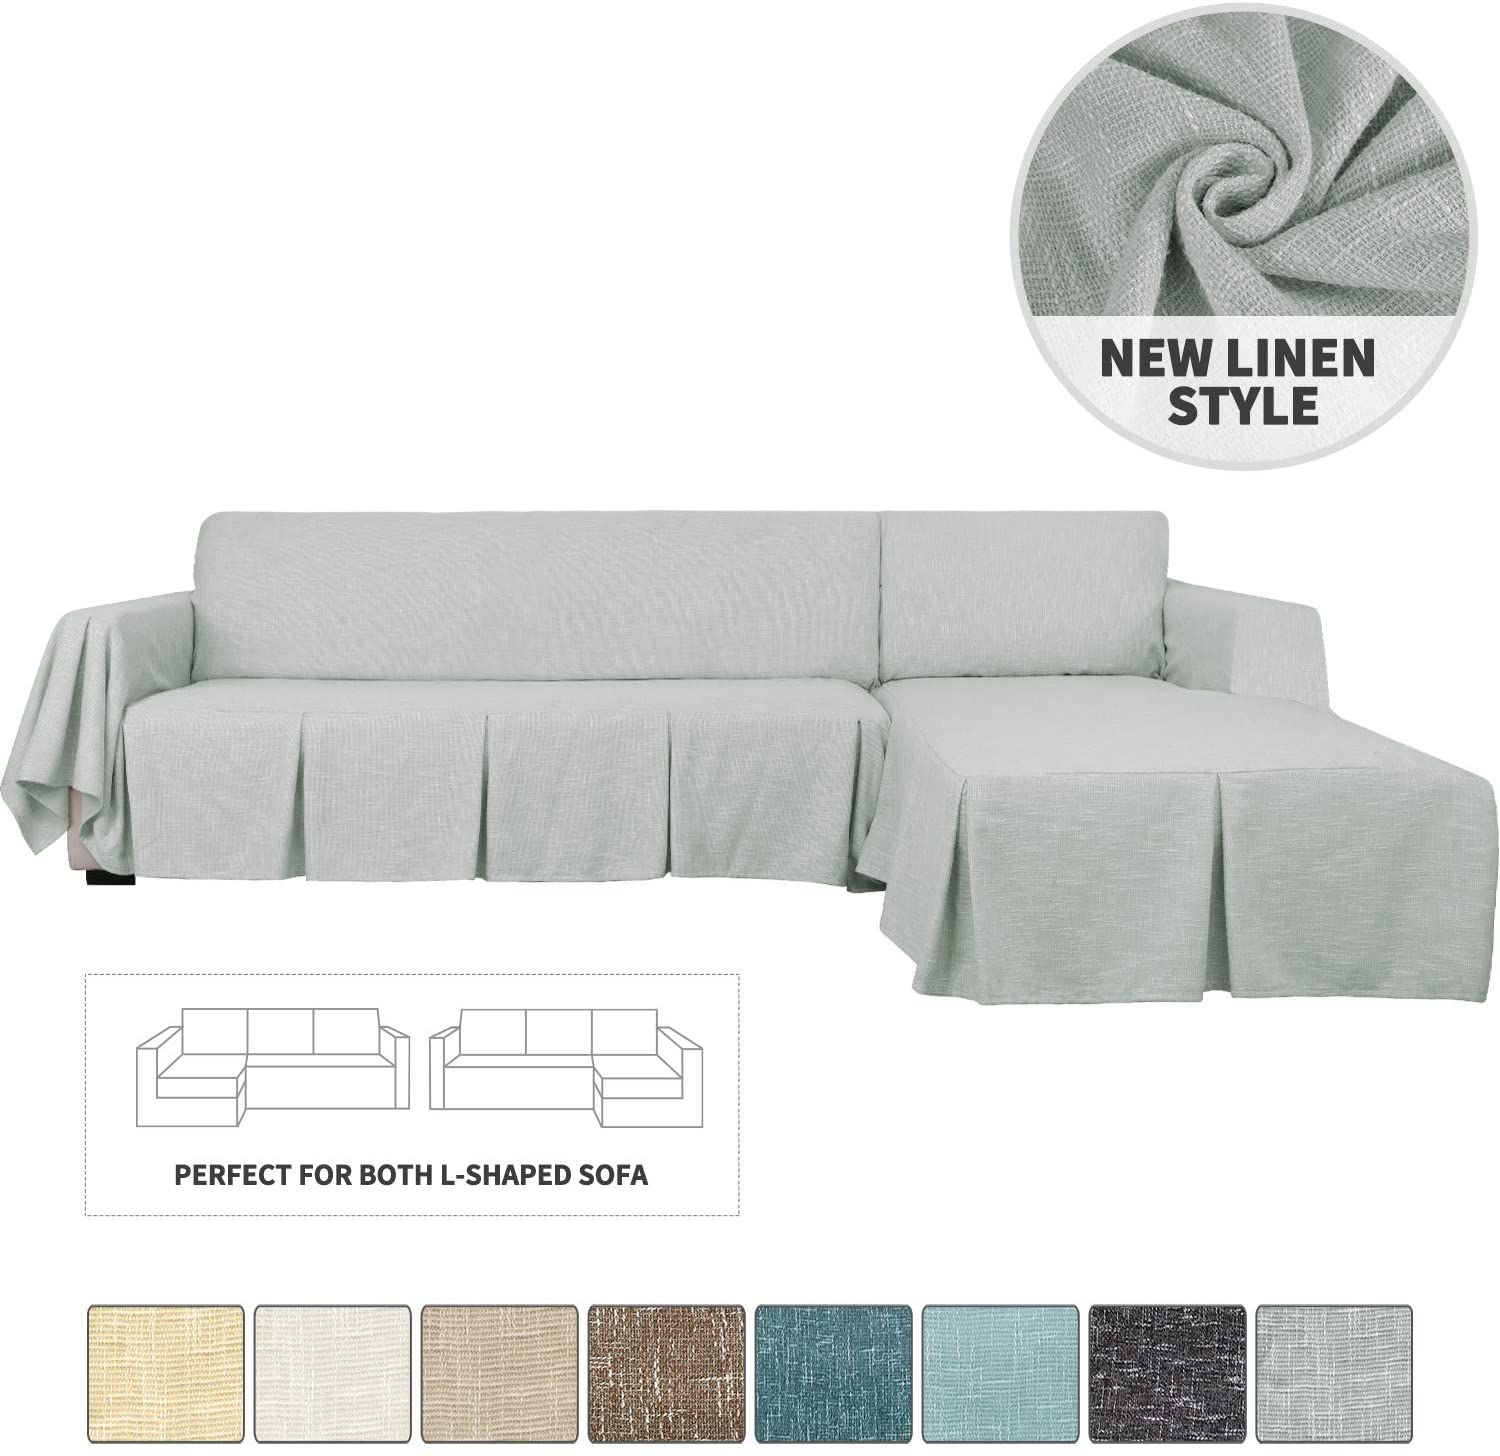 YEMYHOM Sectional Couch Covers 2-Piece Linen L Shape Sofa Cover with Ruffles Durable Slip Covers for Dogs Furniture Protector Slipcovers for Living Room (2-Seat with Left Chaise, Light Gray)